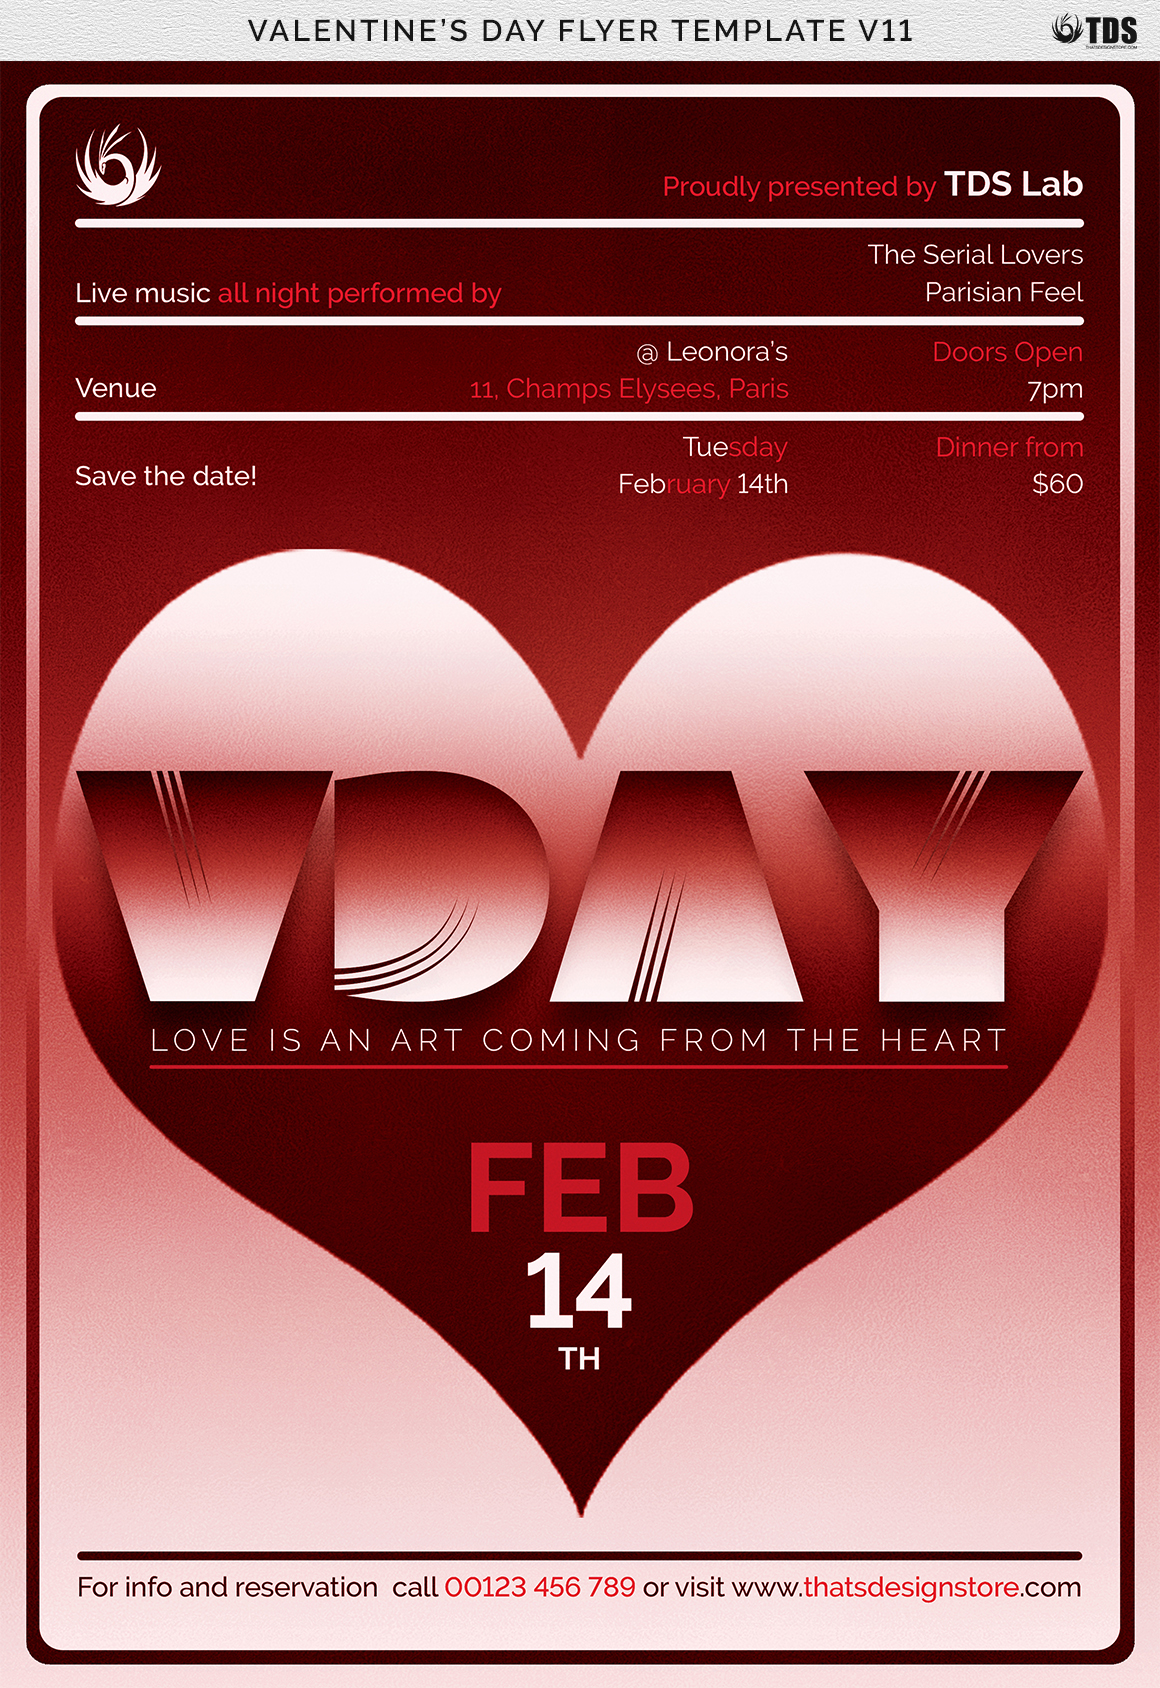 Valentines Day Flyer Template V11 example image 9